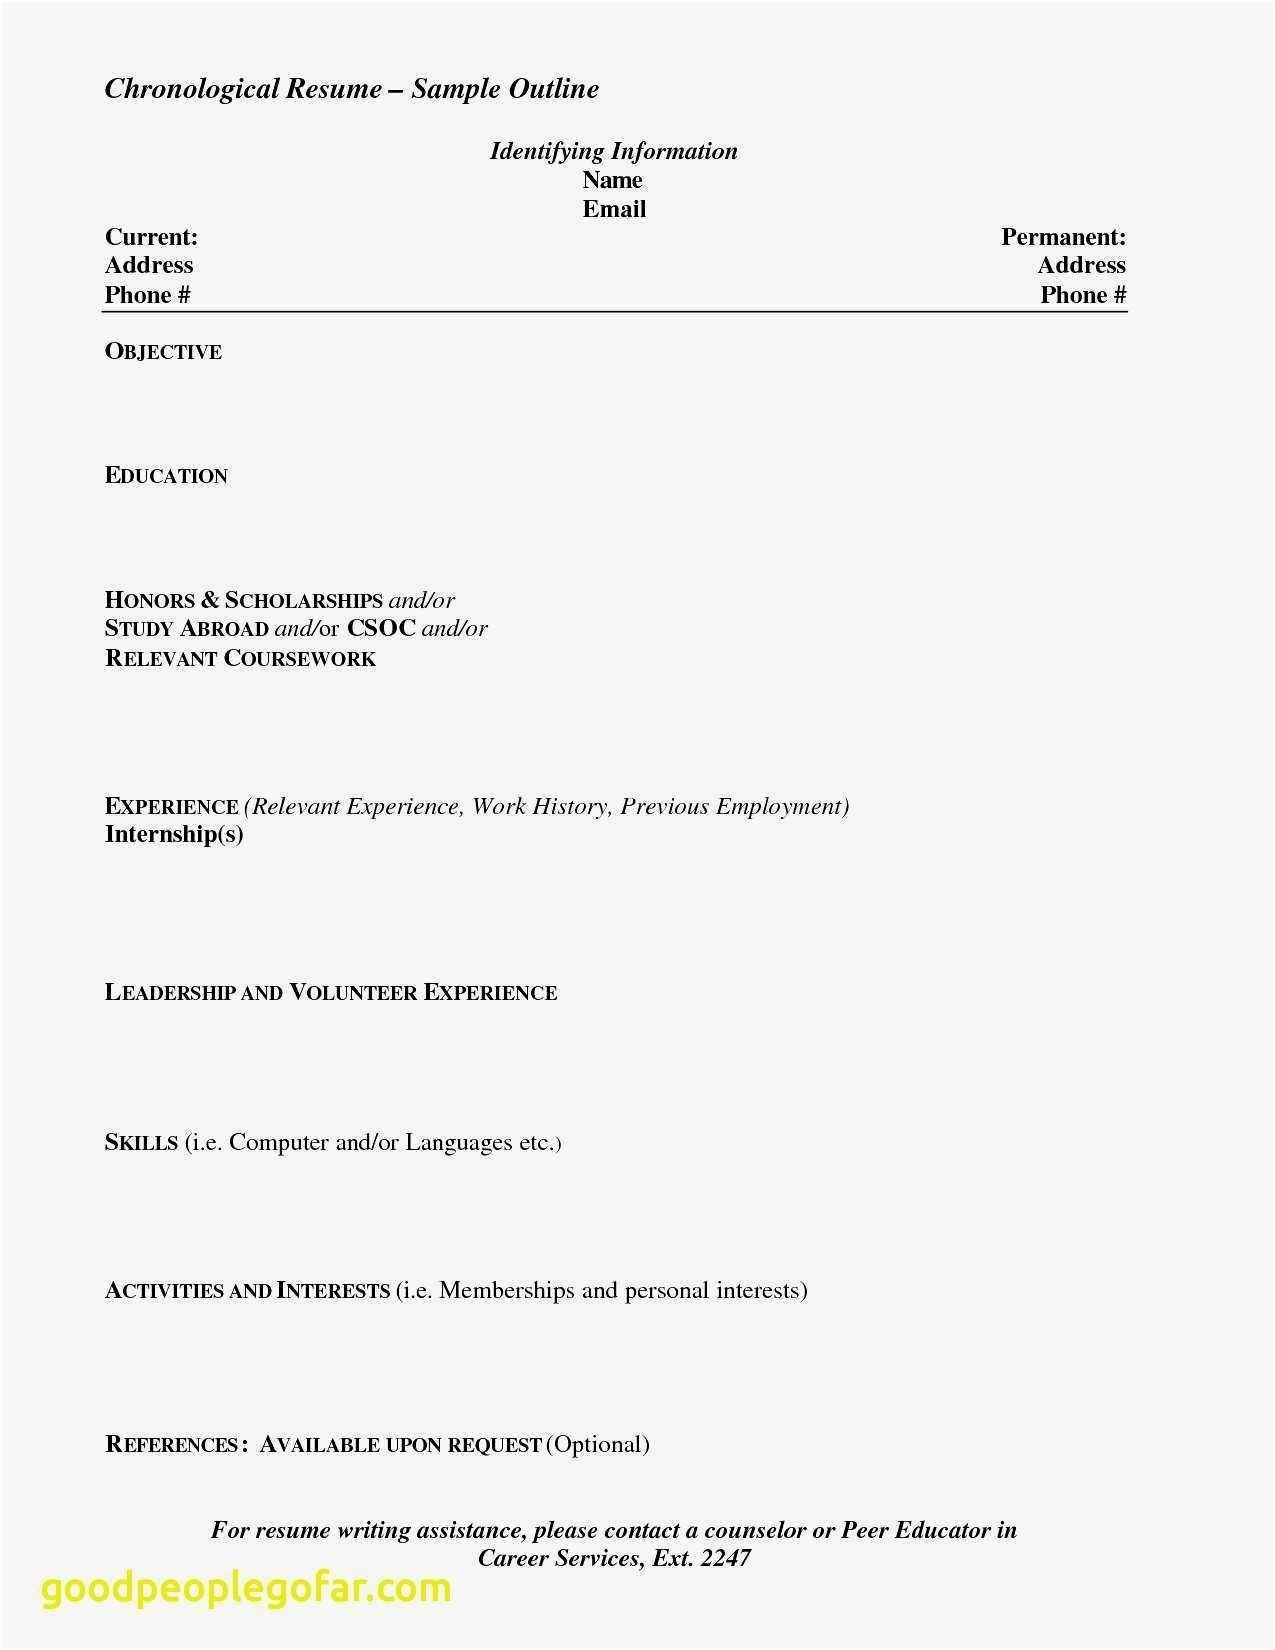 Student Nurse Resume Template Free - Nurse Resume Samples Awesome Sample Nursing Resume New Unique Resume